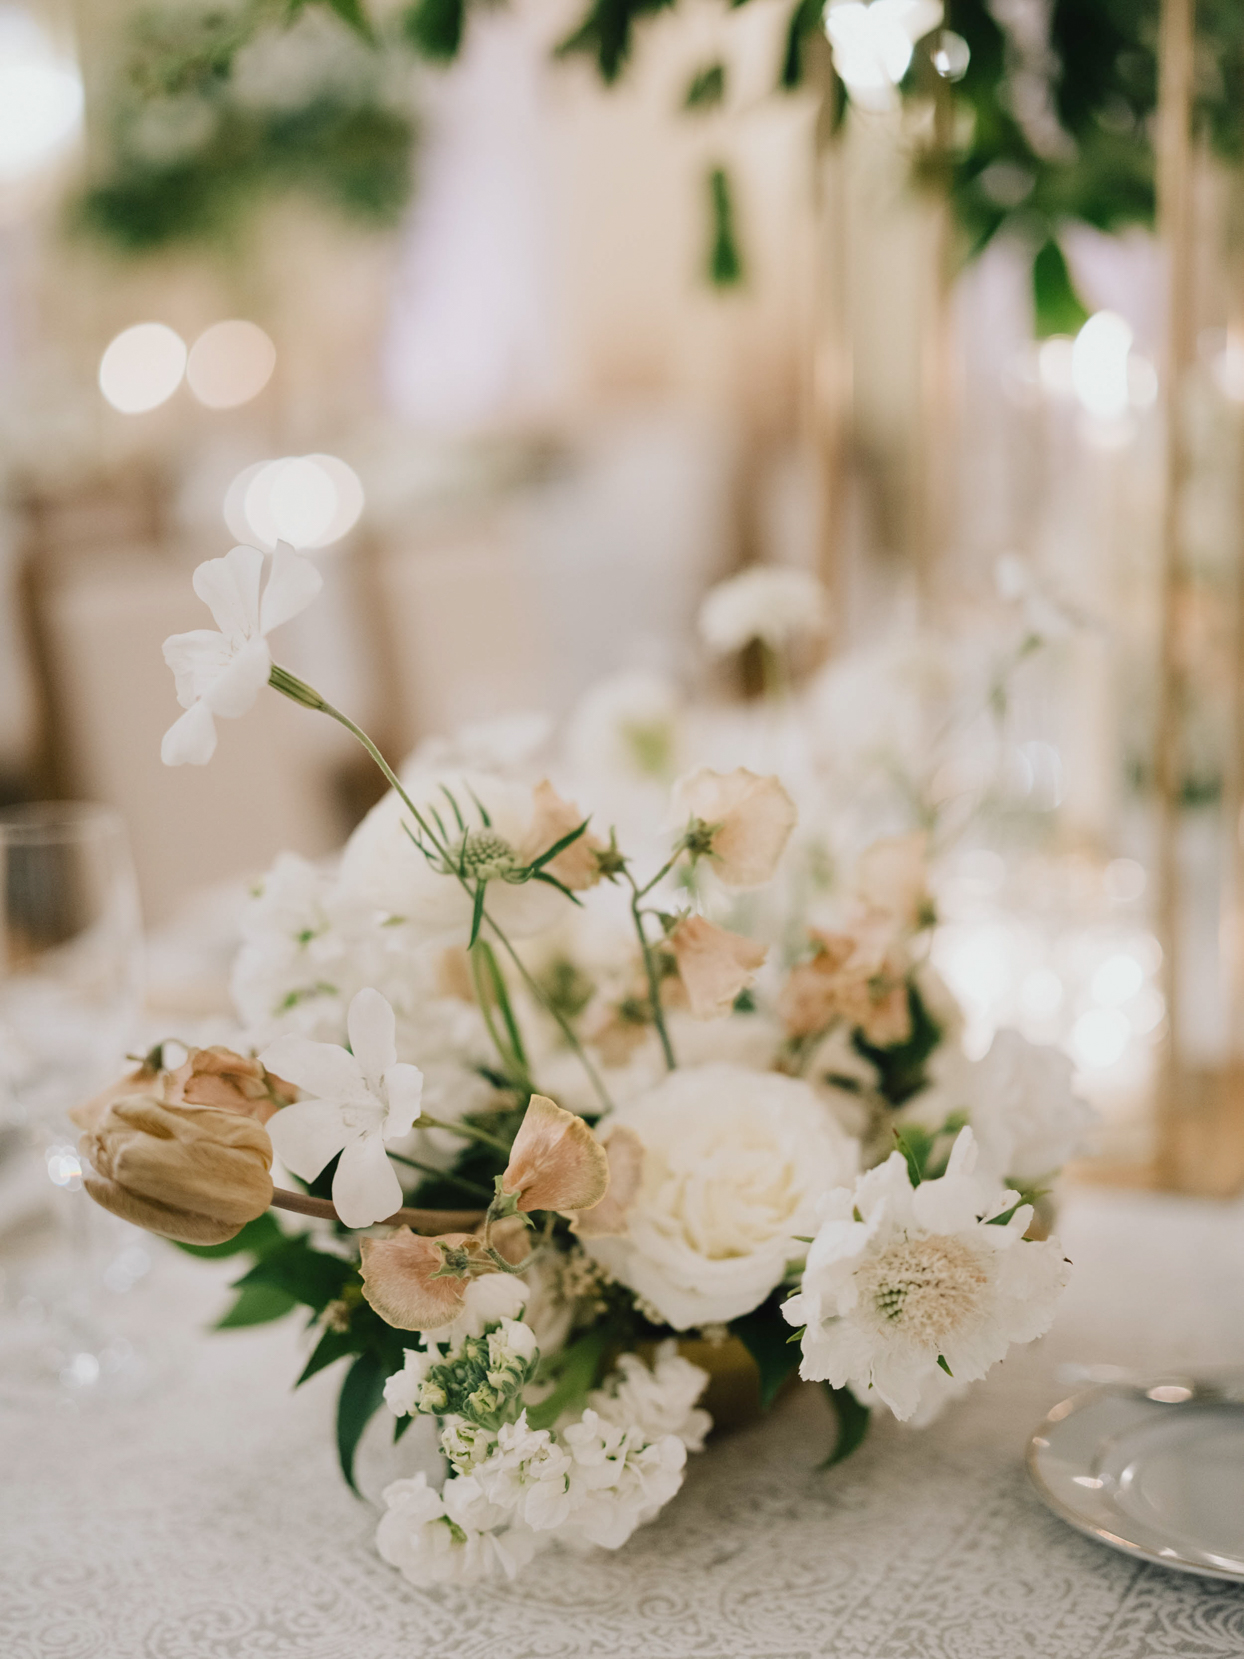 floral centerpieces at wedding